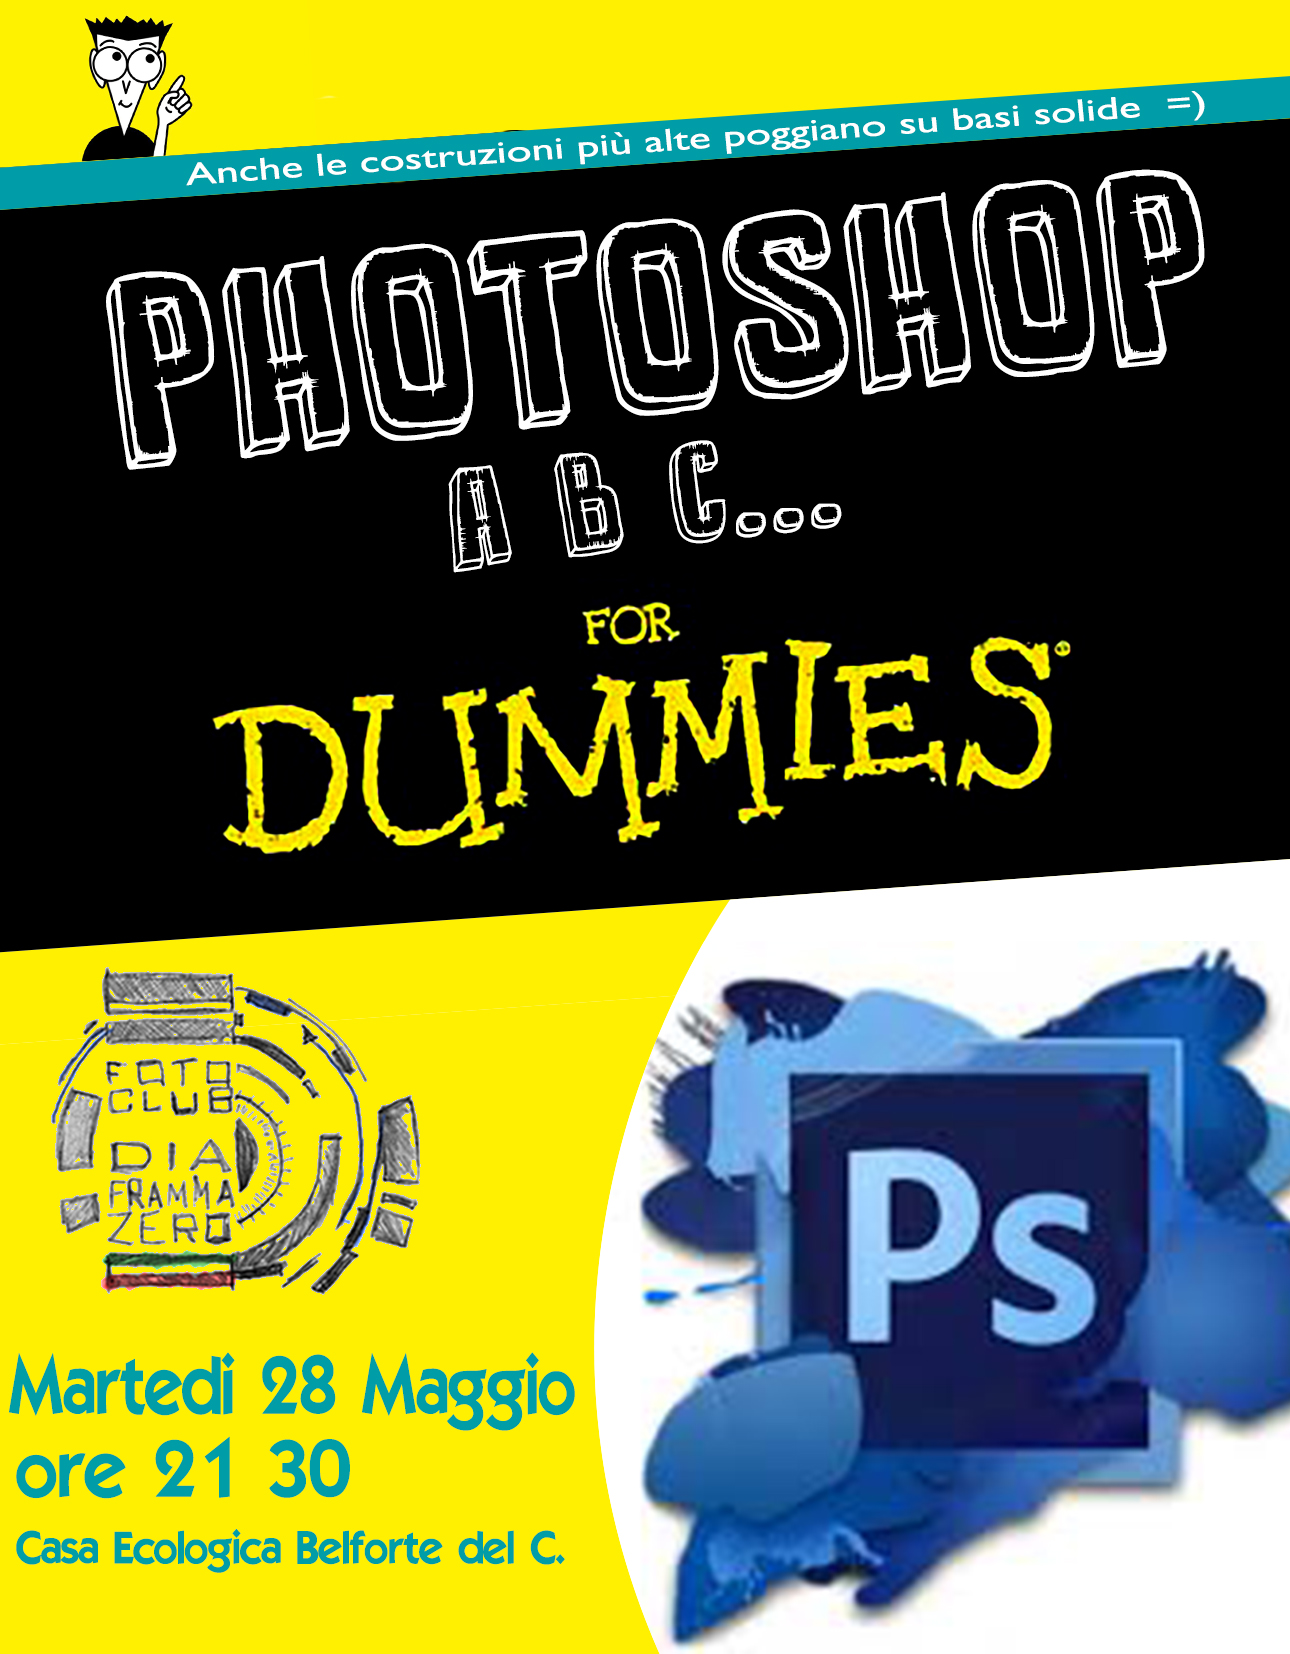 locandina fo dummies photos